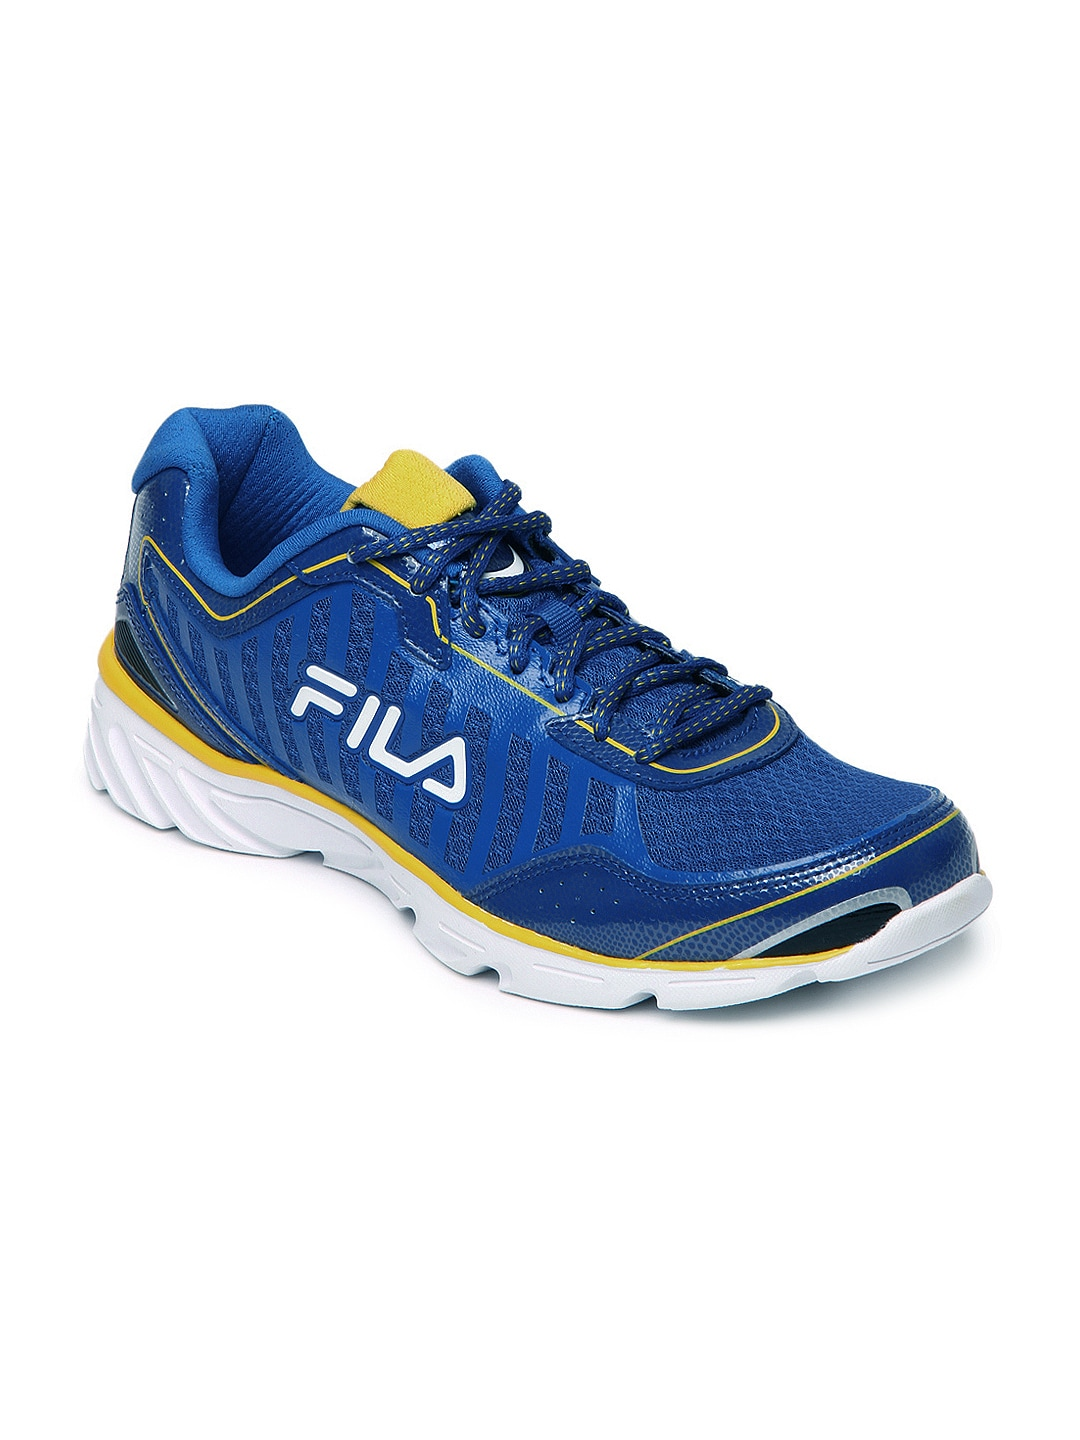 buy fila blue memory aerosprinter sport shoes sports